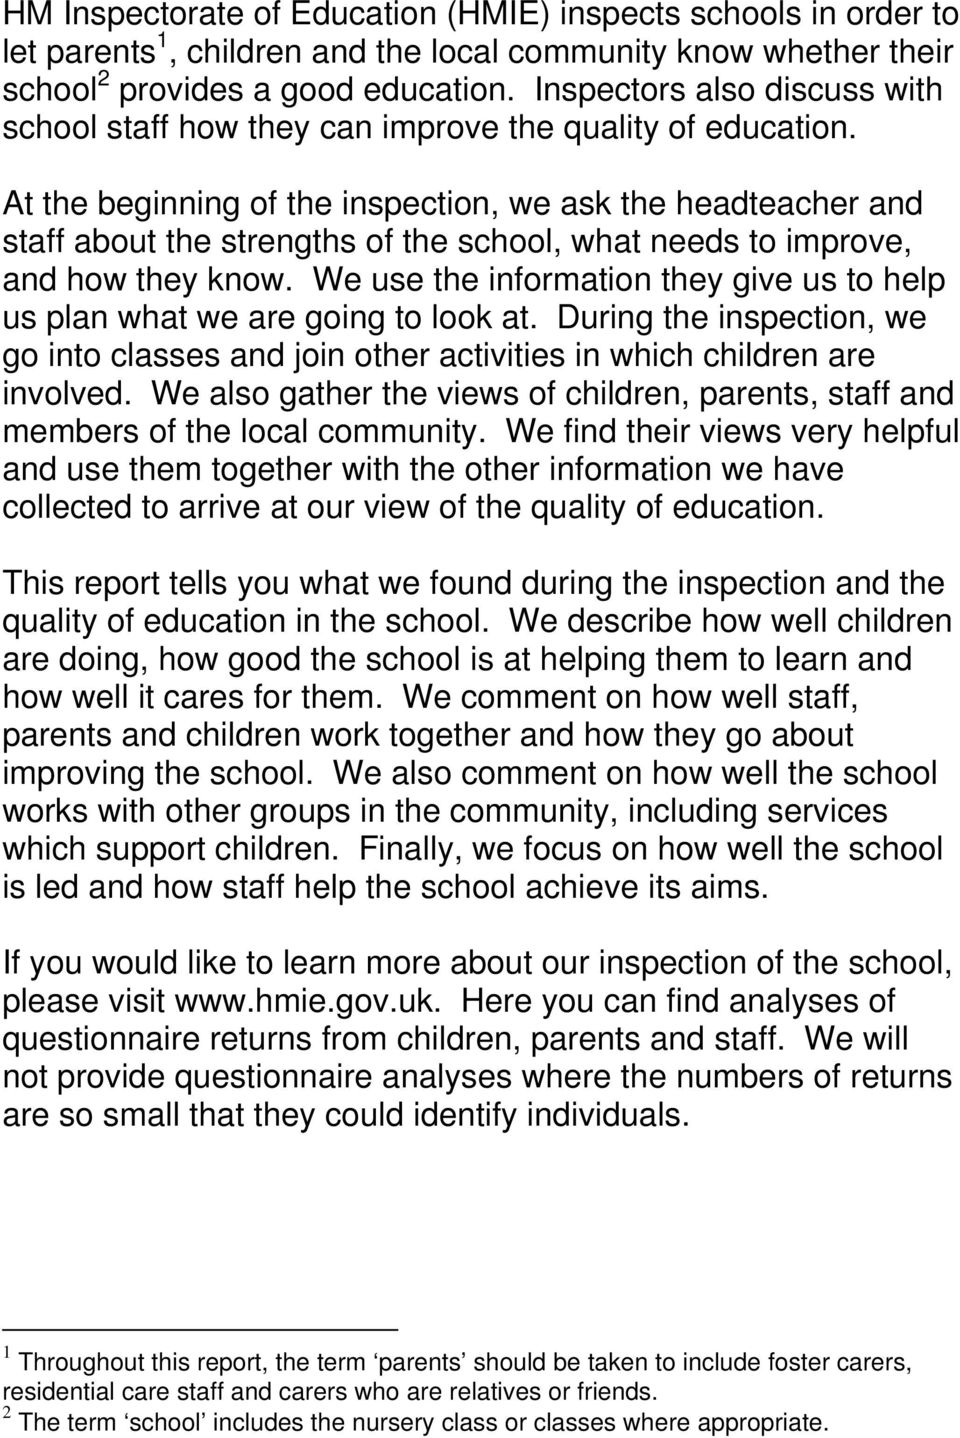 At the beginning of the inspection, we ask the headteacher and staff about the strengths of the school, what needs to improve, and how they know.